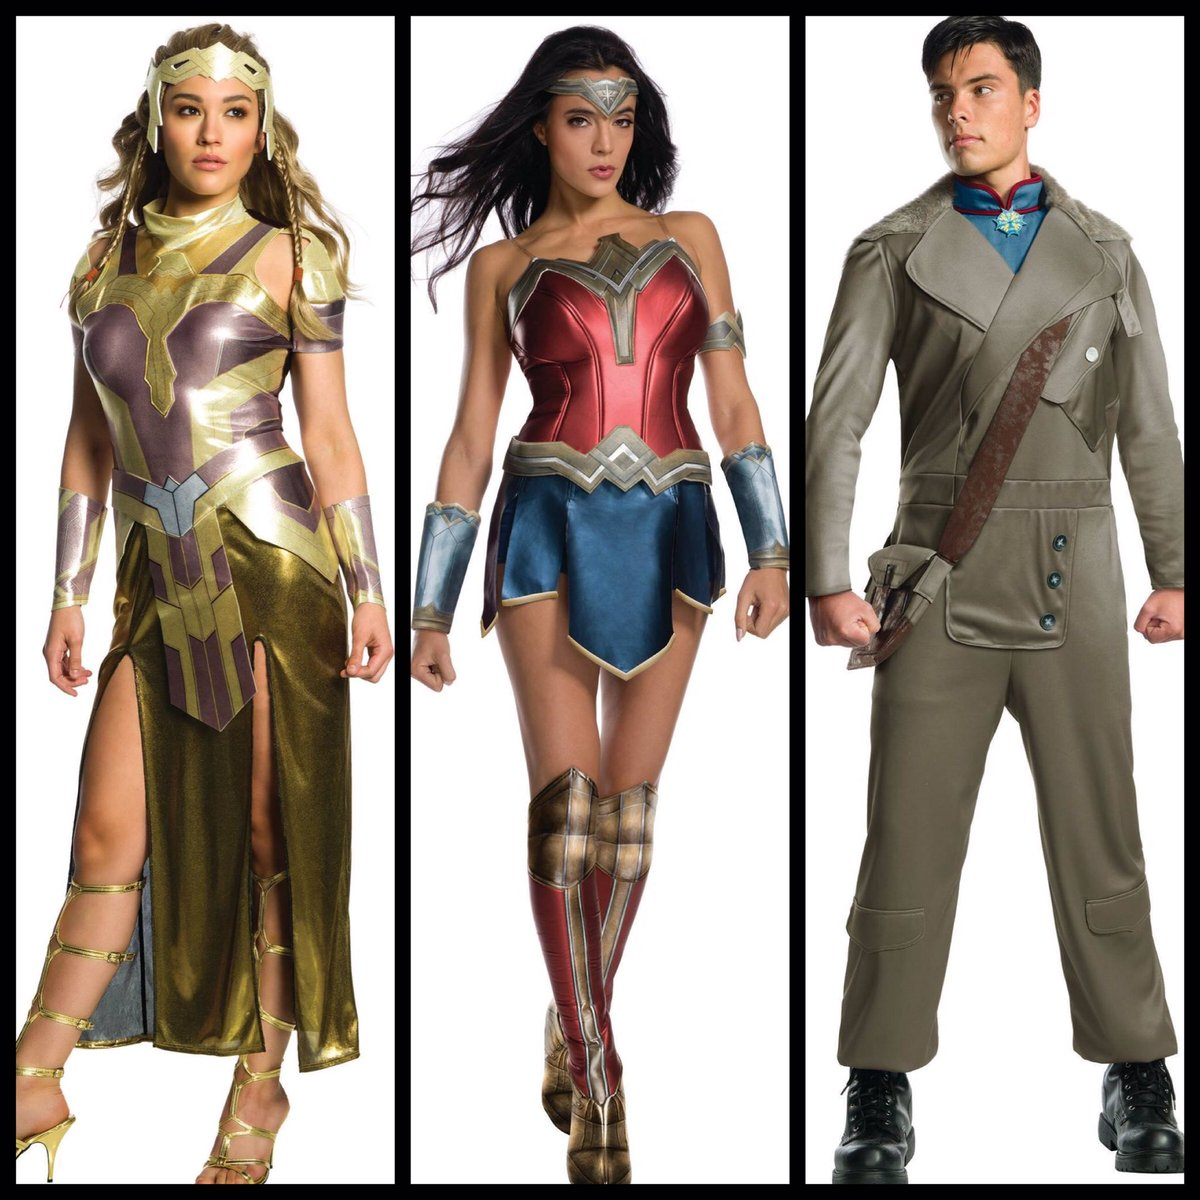 Rubie S Costume Co On Twitter Before She Was Wonder Woman She Was Princess Of The Amazons We Are Proud To Present The New Womanwoman Costume Collection Halloween Https T Co Mh36j9k1fa